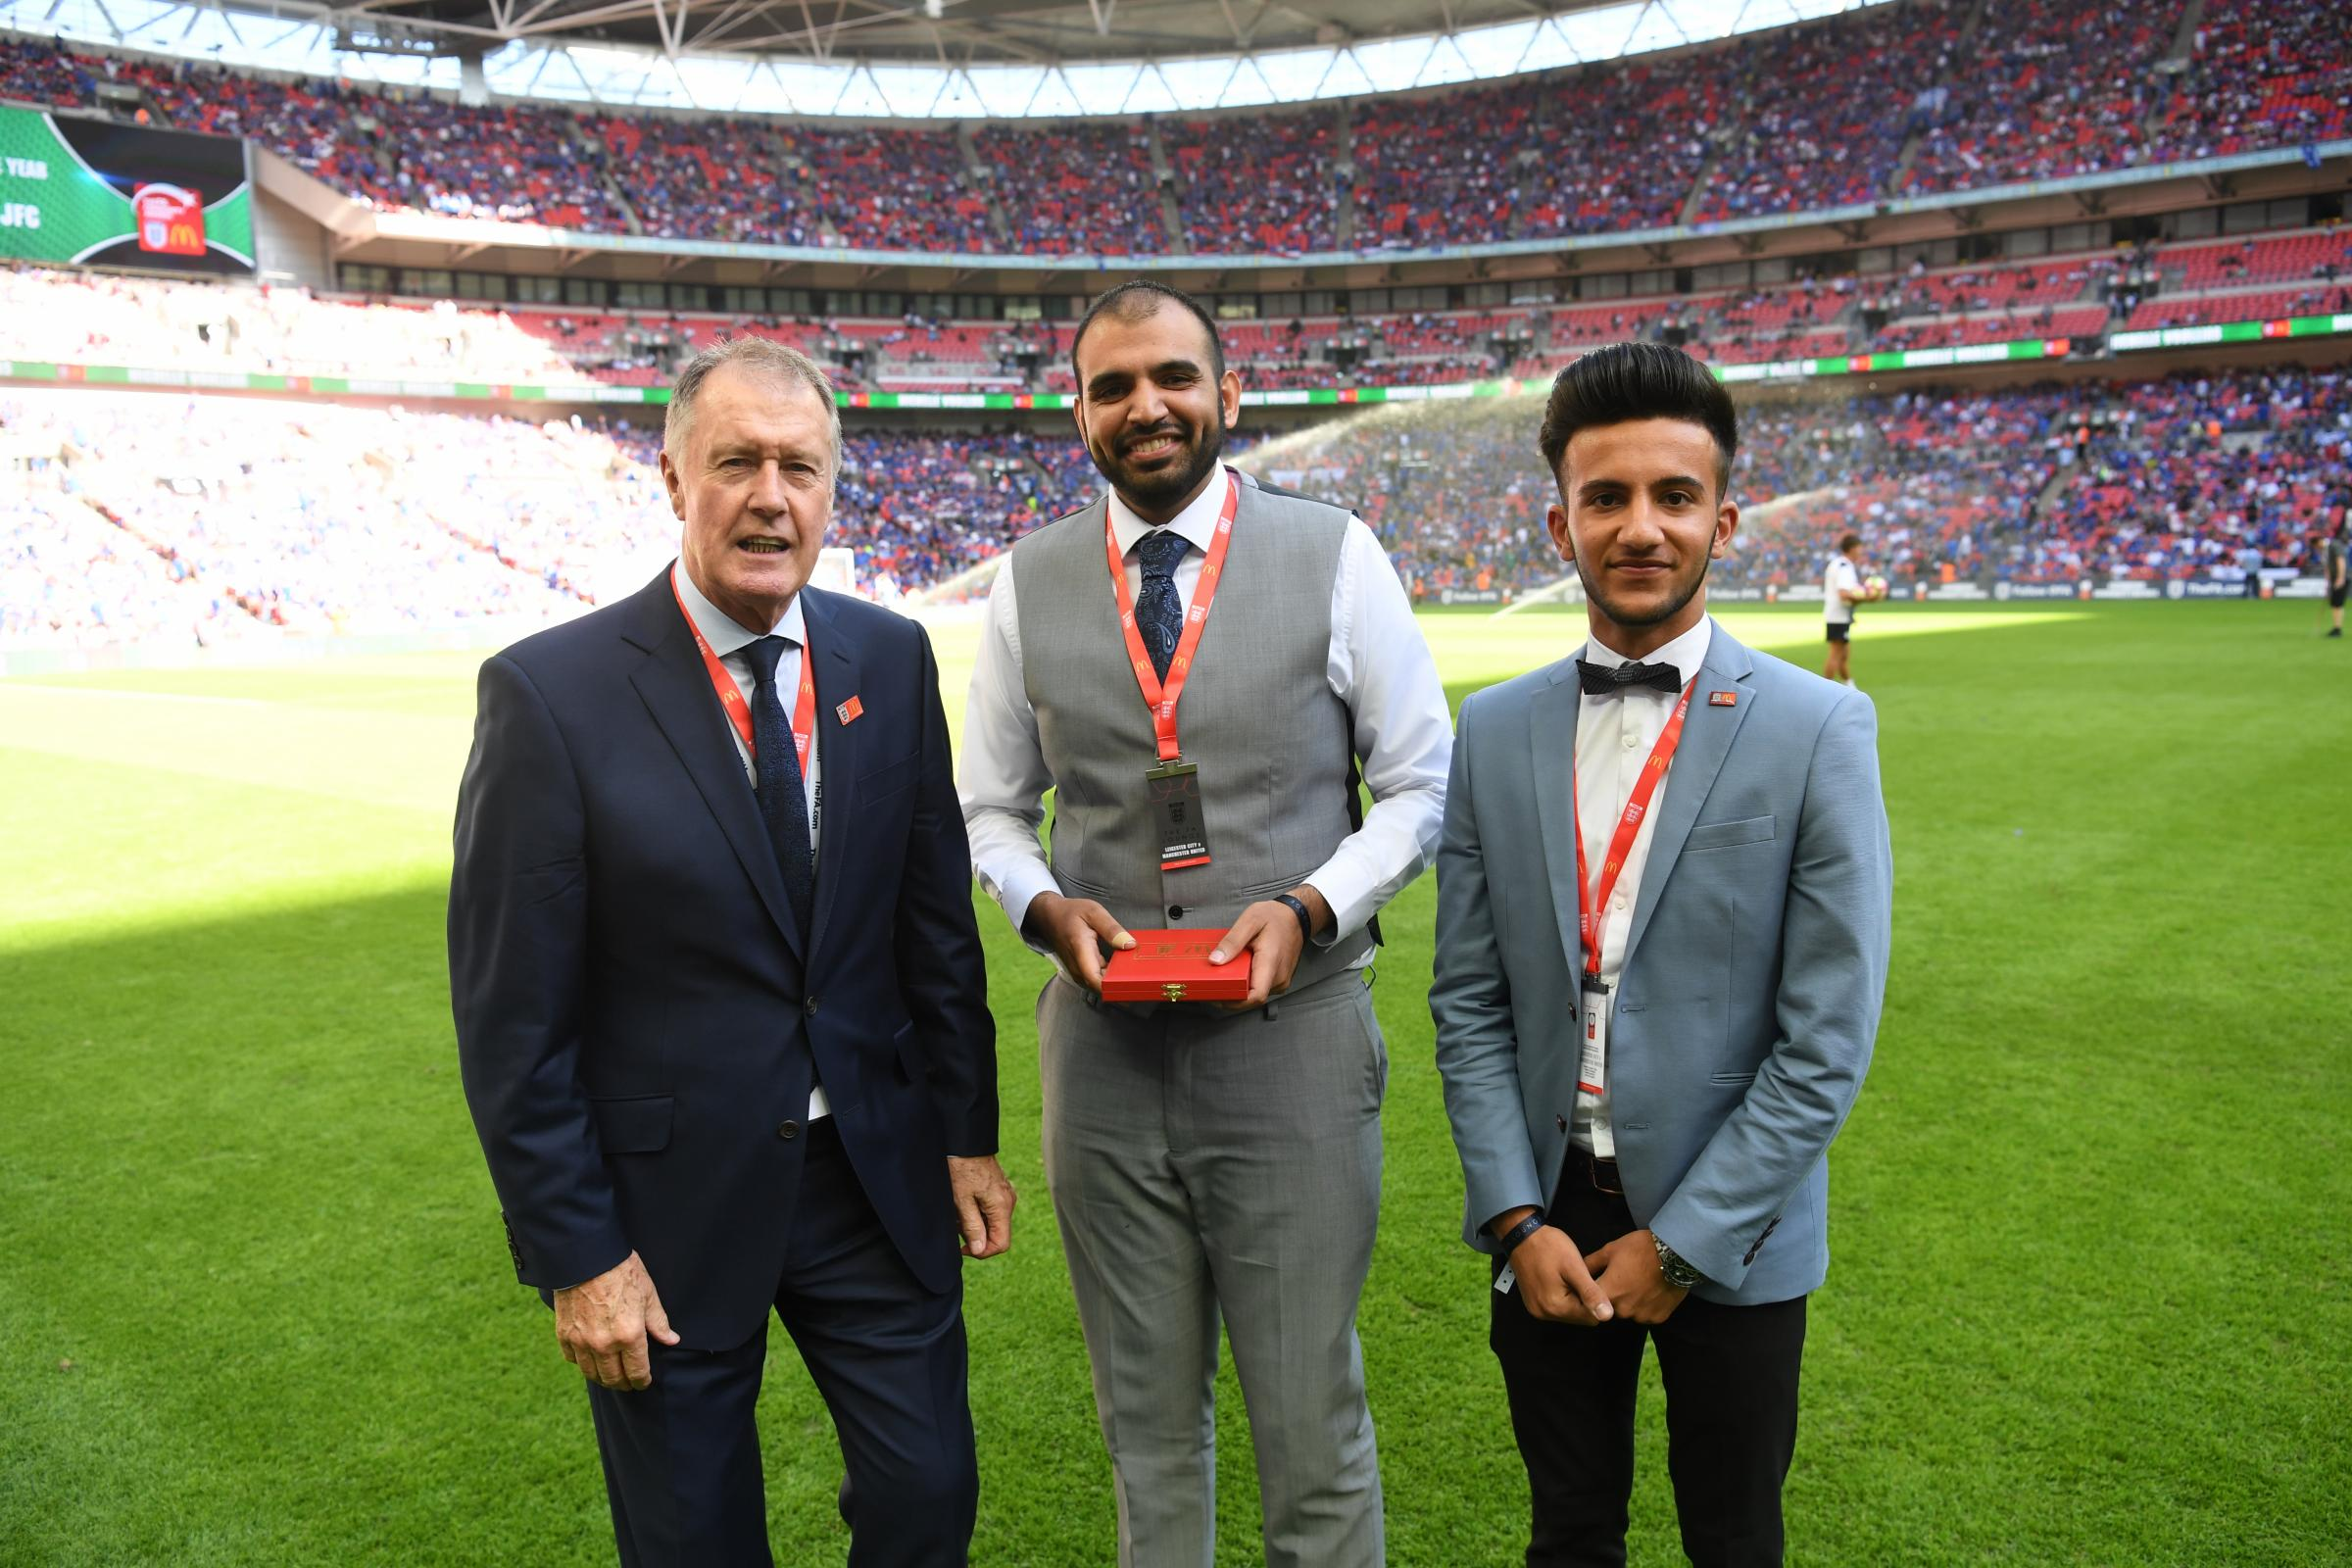 Alpha United Juniors, collecting their FA club of the year award from Sir Geoff Hurst, need more volunteers at training and on match-days